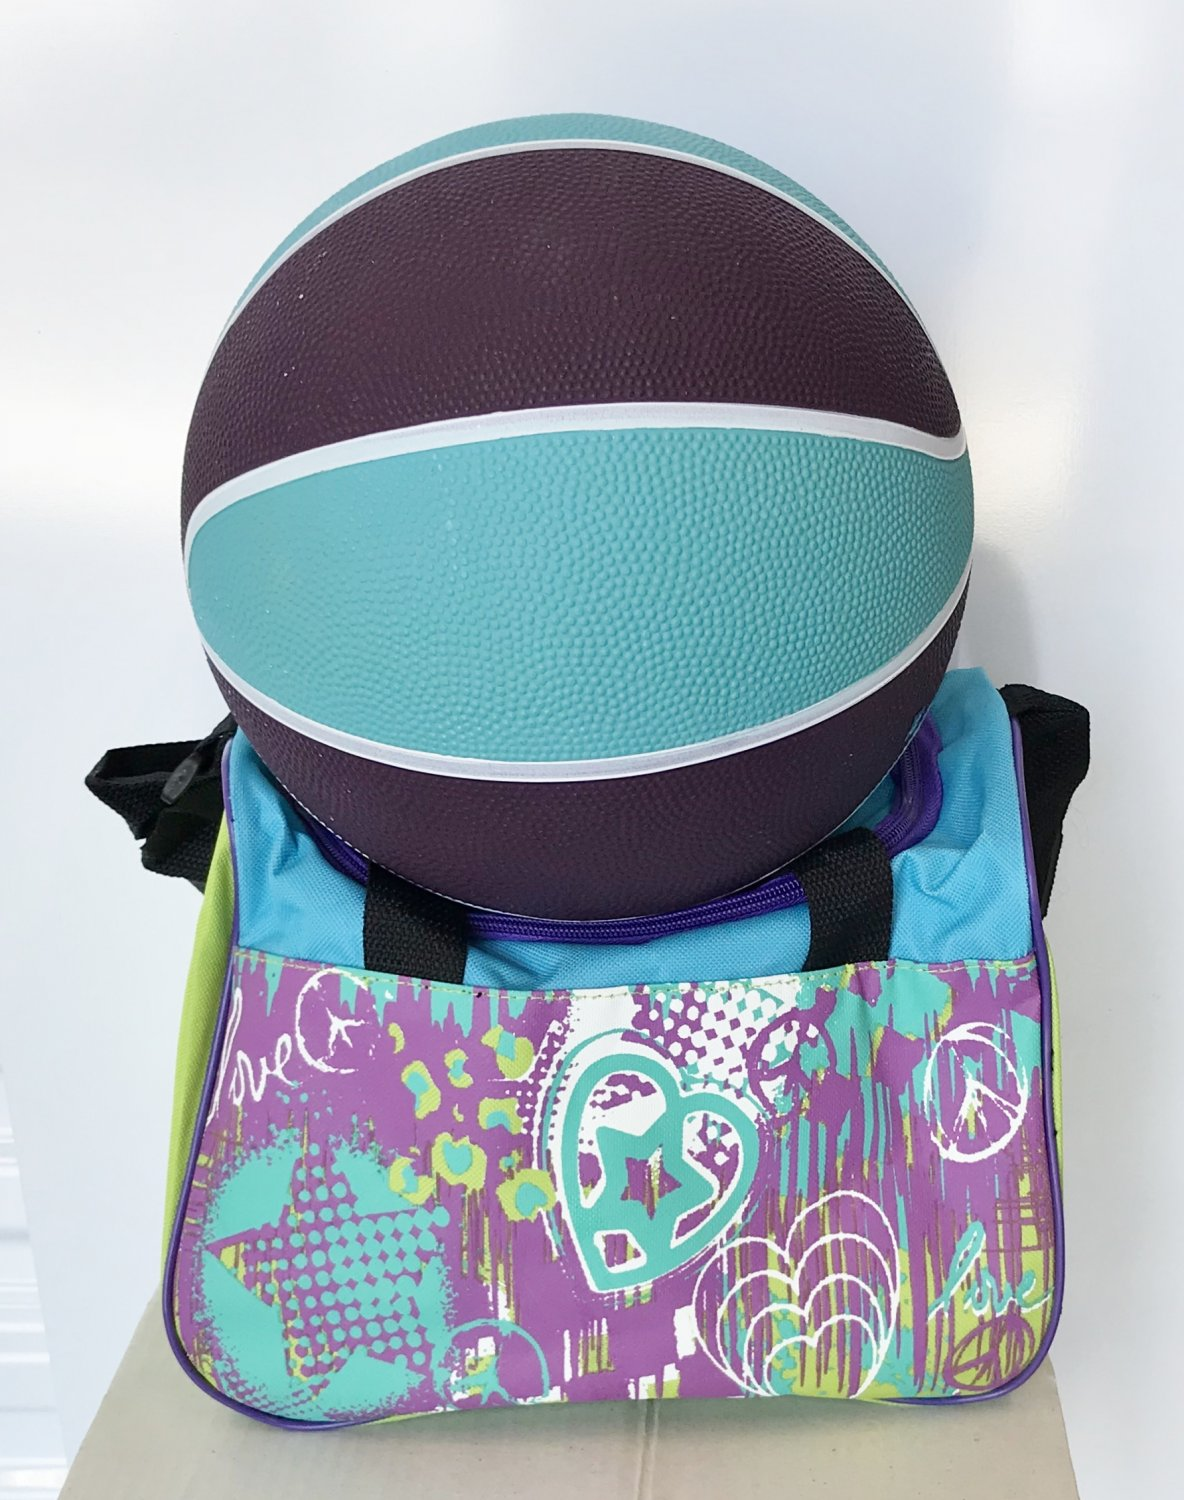 NEW Girls BACKPACK GYM BAG and SPORTSBALL Gift Set 2 Piece BLUE/ PURPLE